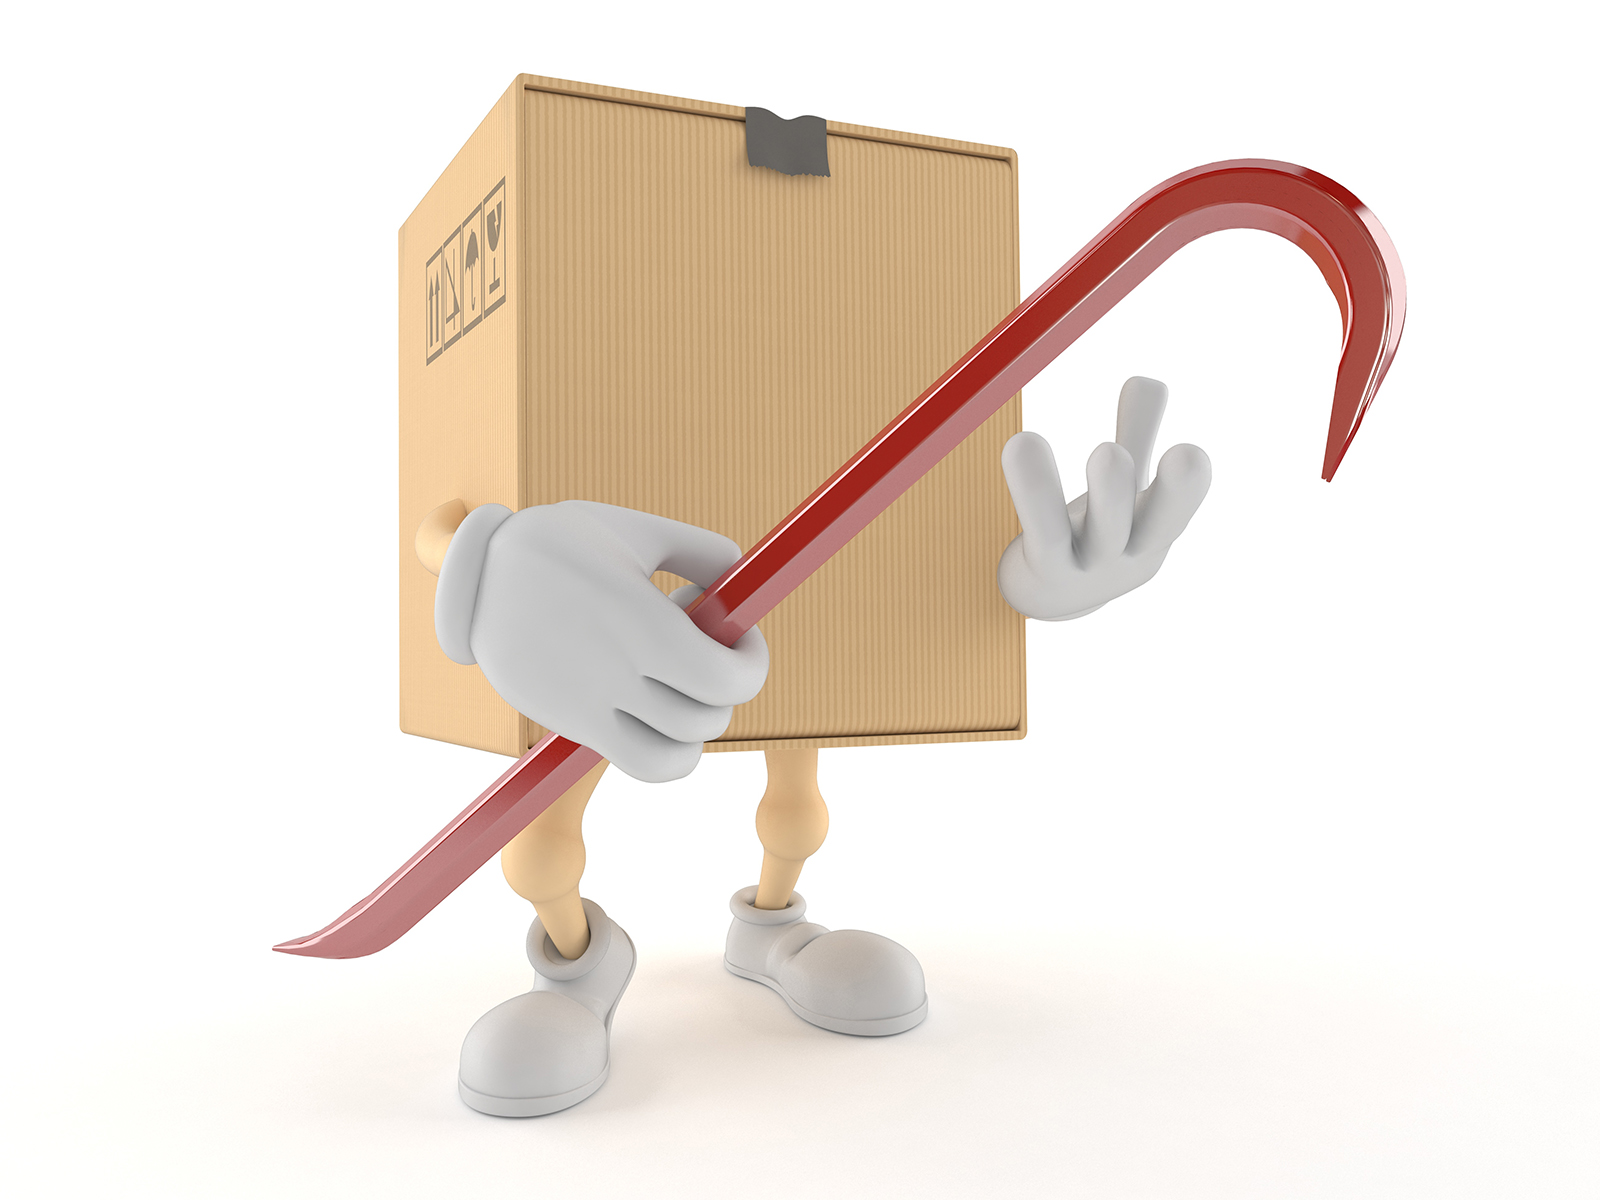 Avoiding Todays New Common Problem Of Package Theft